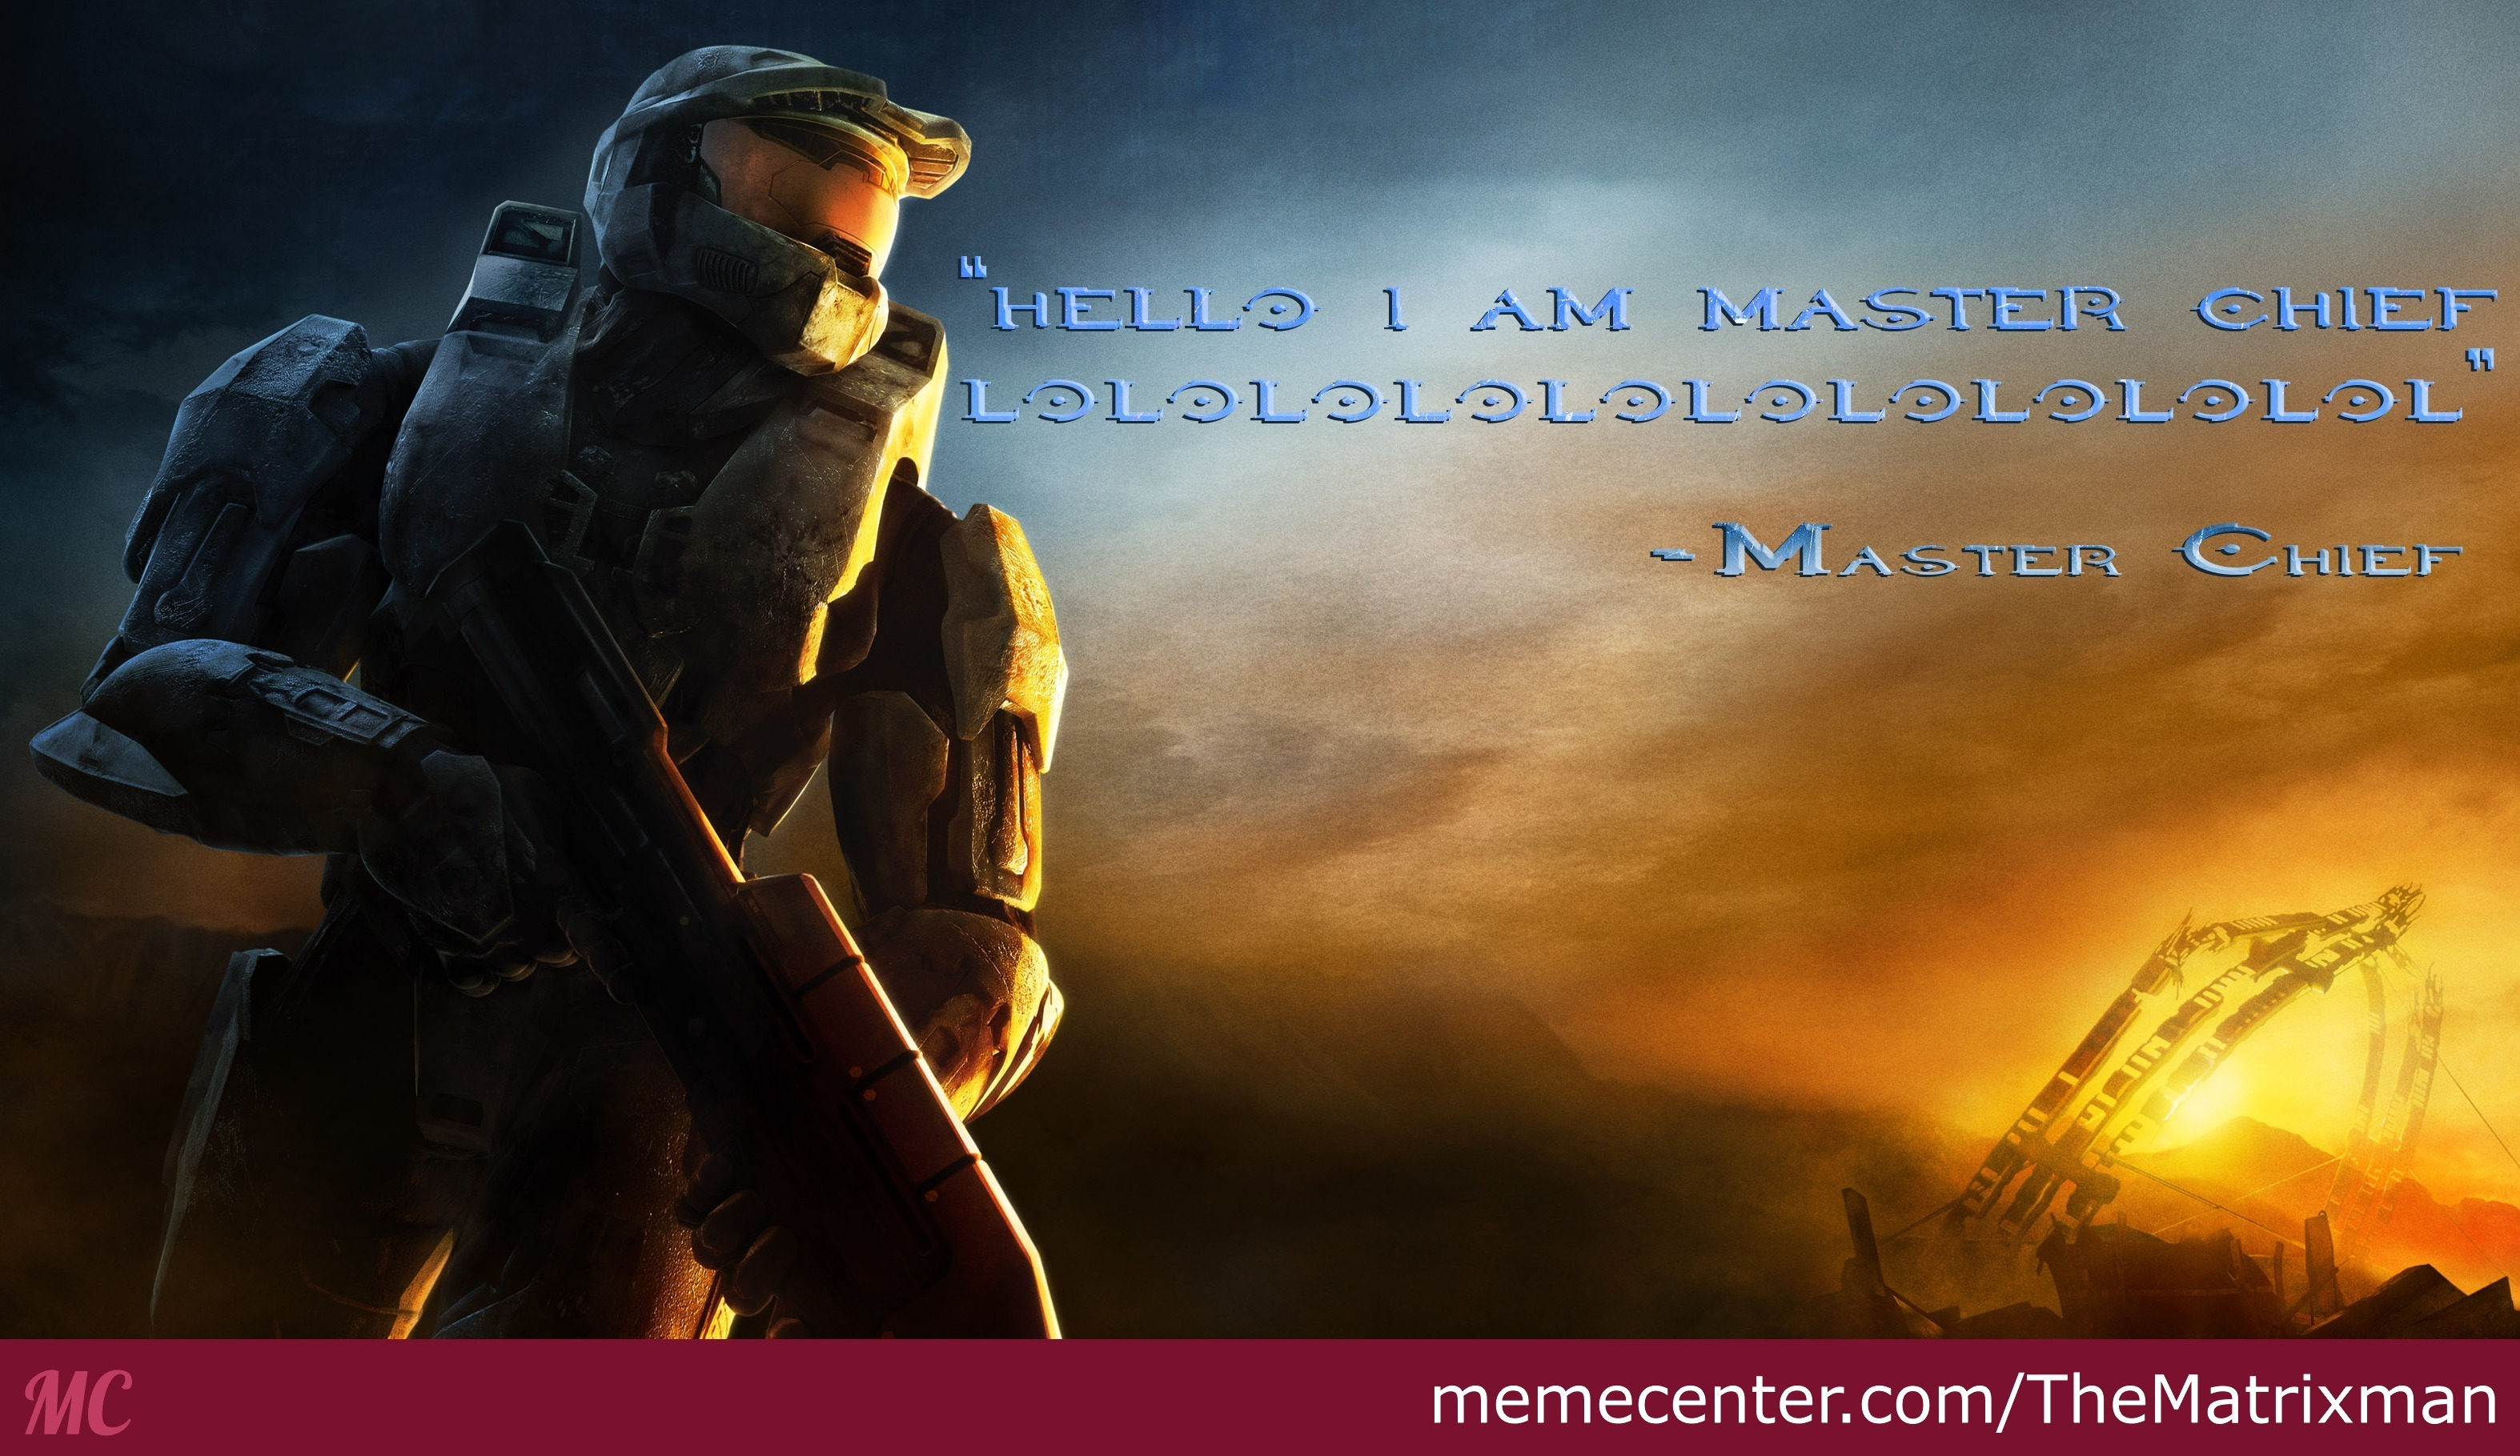 One Of The Most Memorable Quotes During The Halo 3 Era